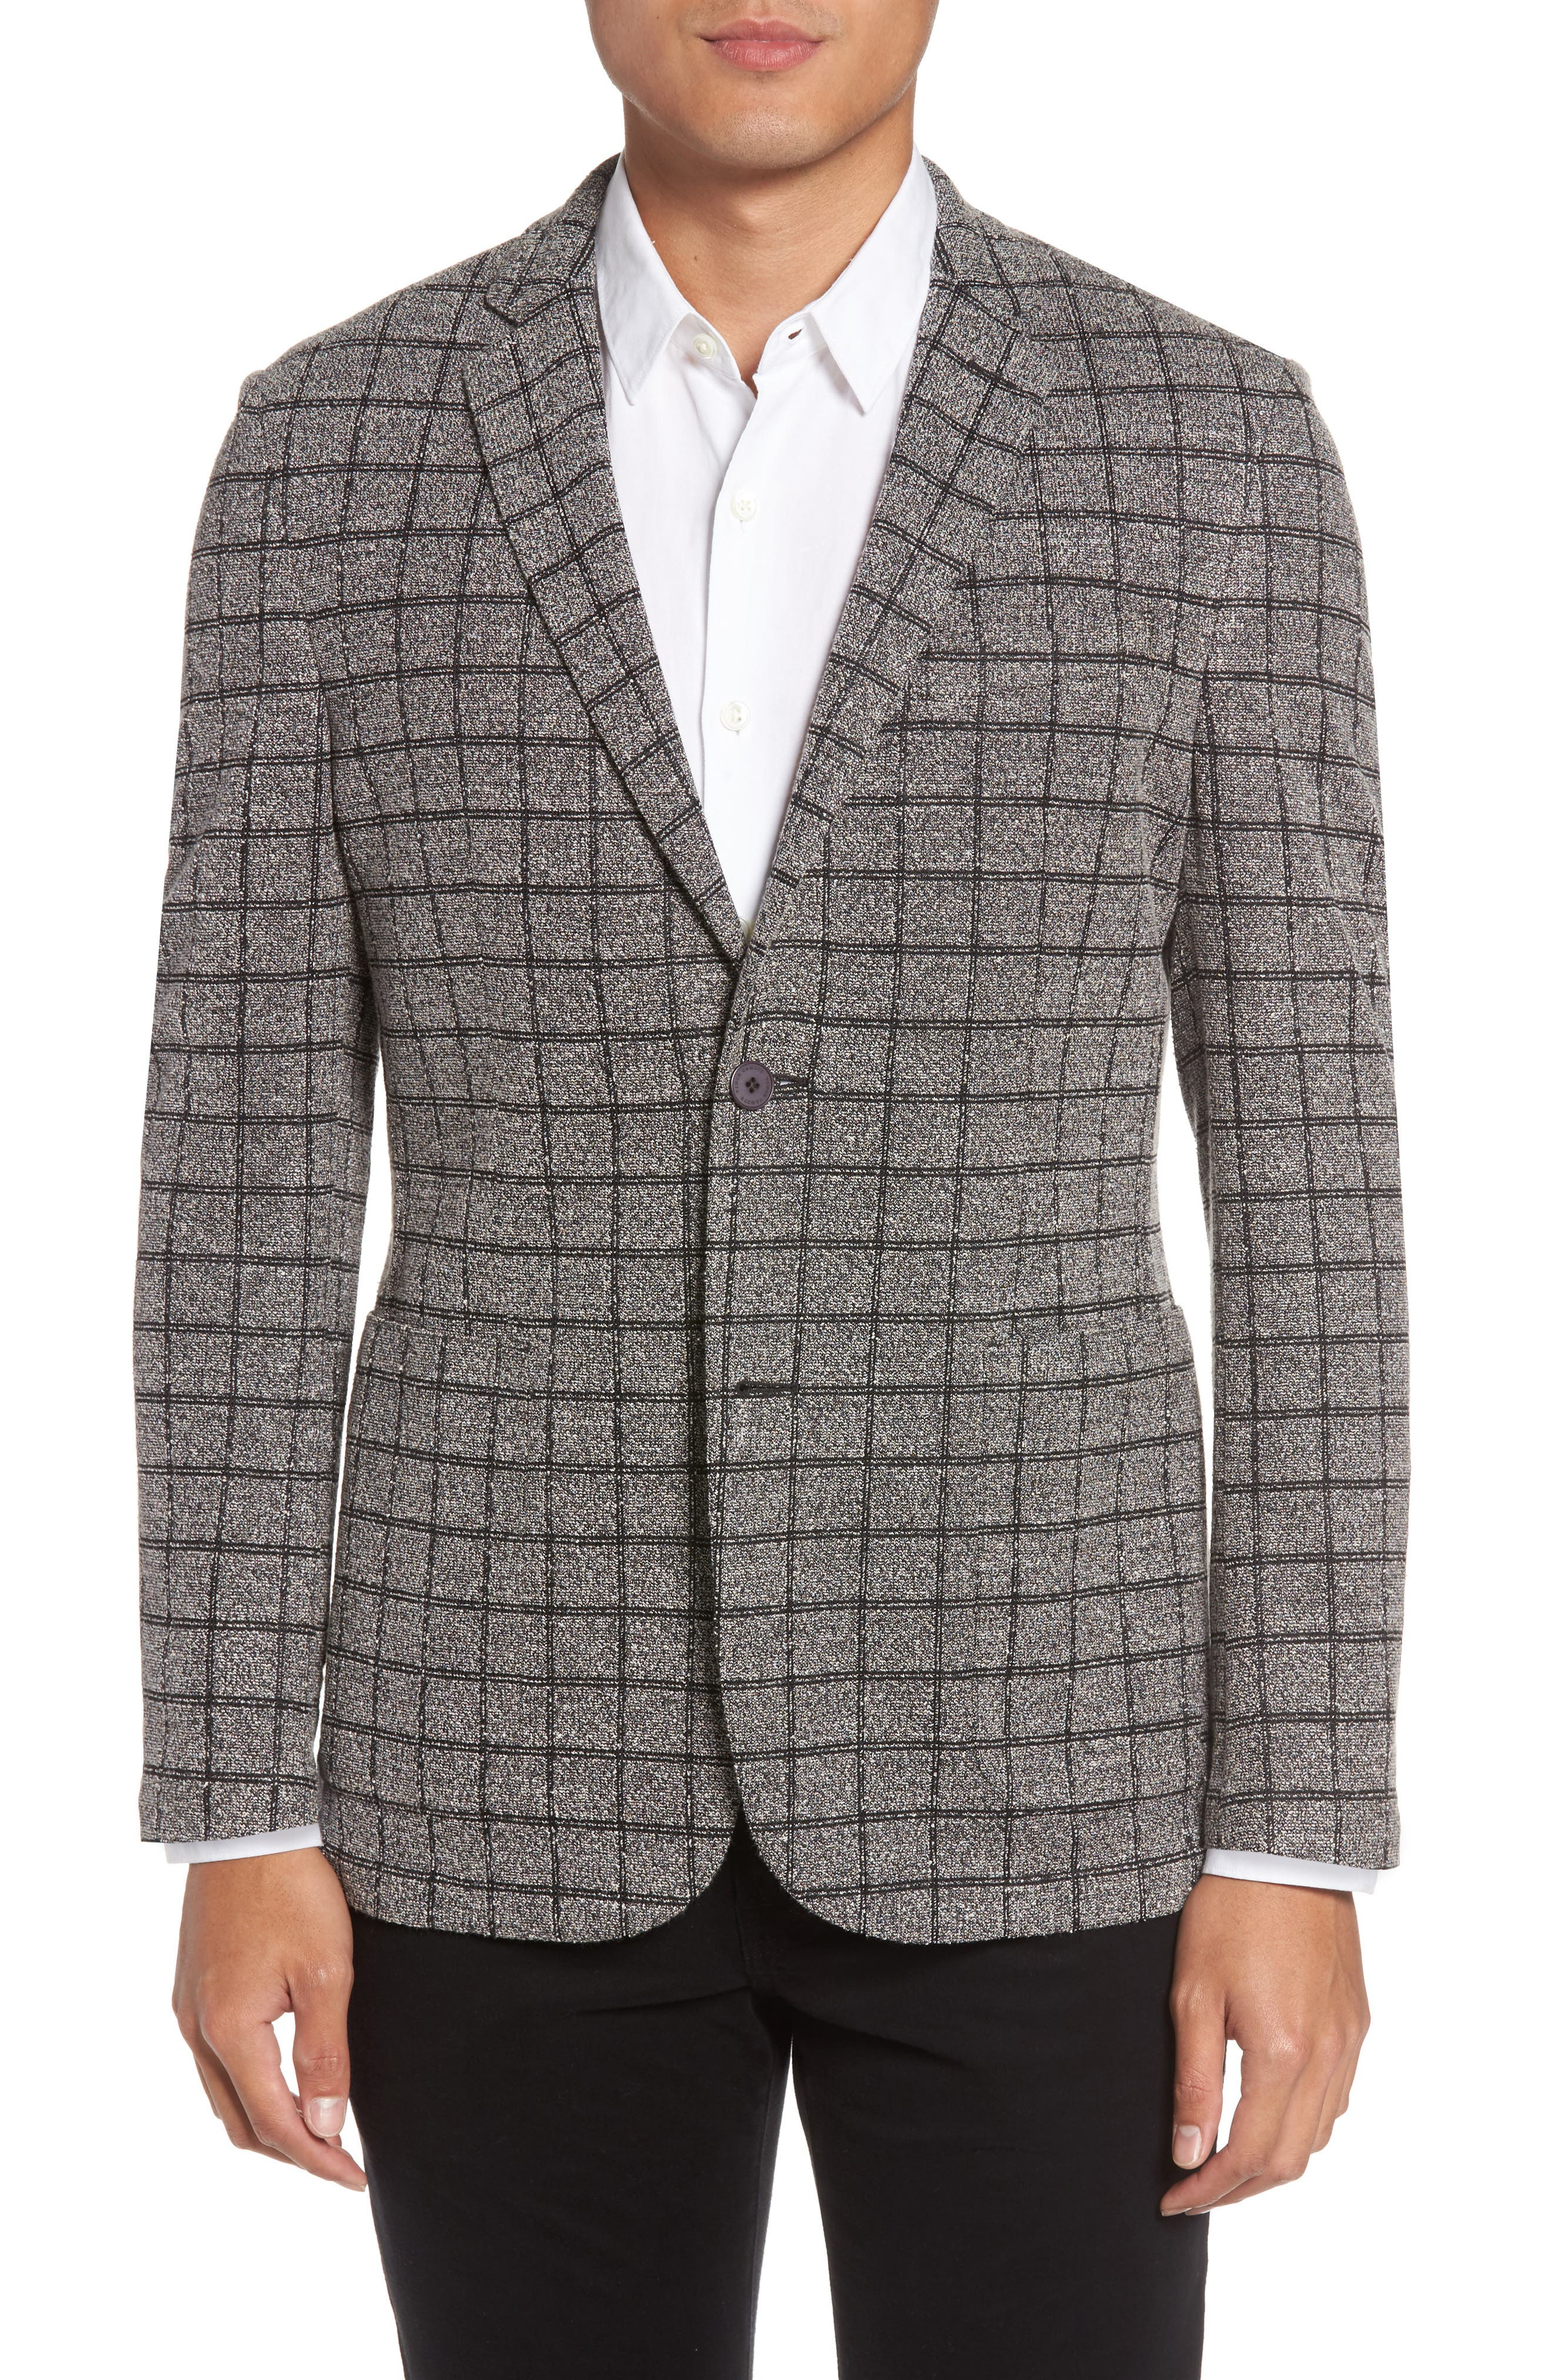 Del Aria Slim Fit Check Knit Jacket,                             Main thumbnail 1, color,                             Charcoal Windowpane Boucle